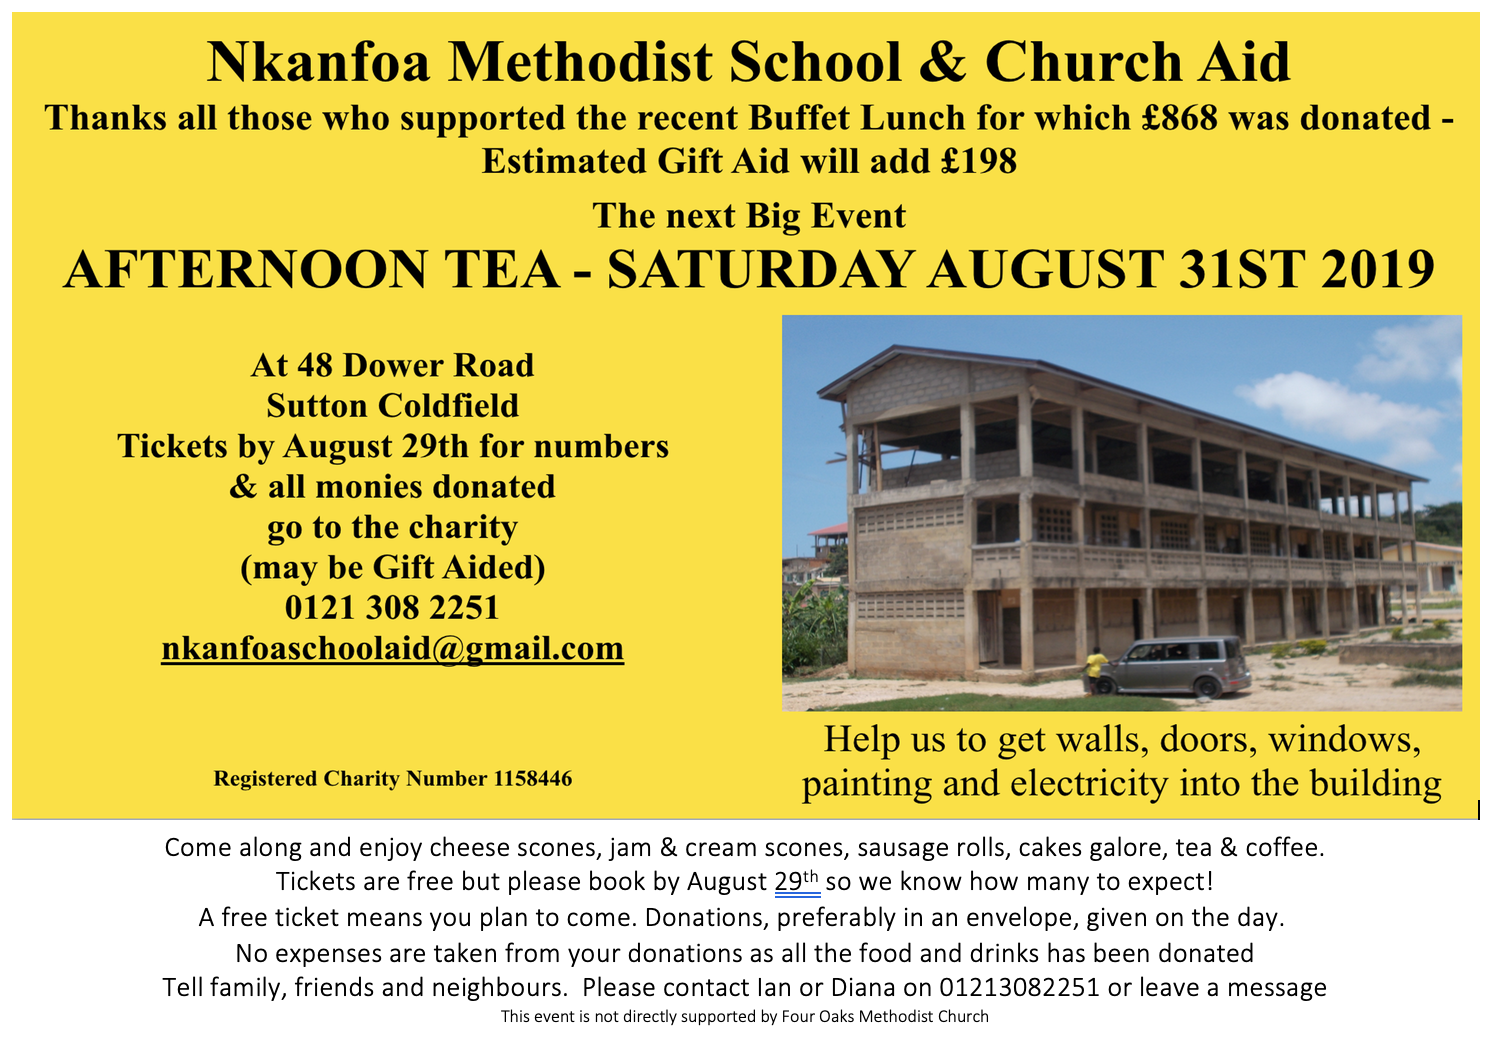 Afternoon Tea on 31st August 2019